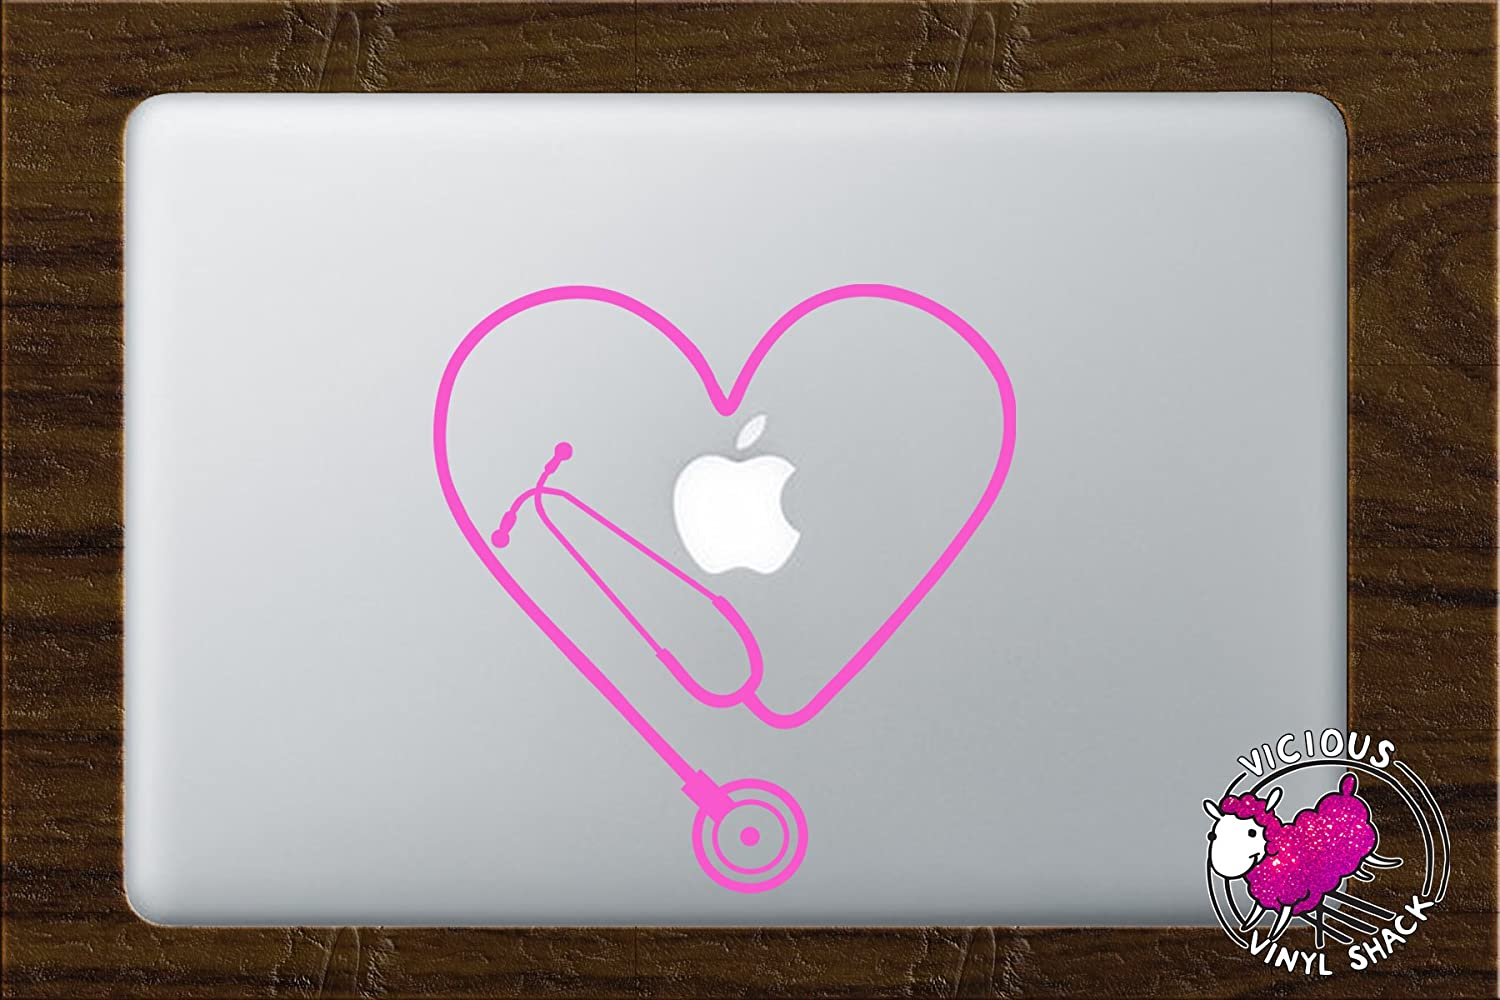 Amazon.com: Stethoscope Heart PINK Vinyl Decal for 13 Inch ...